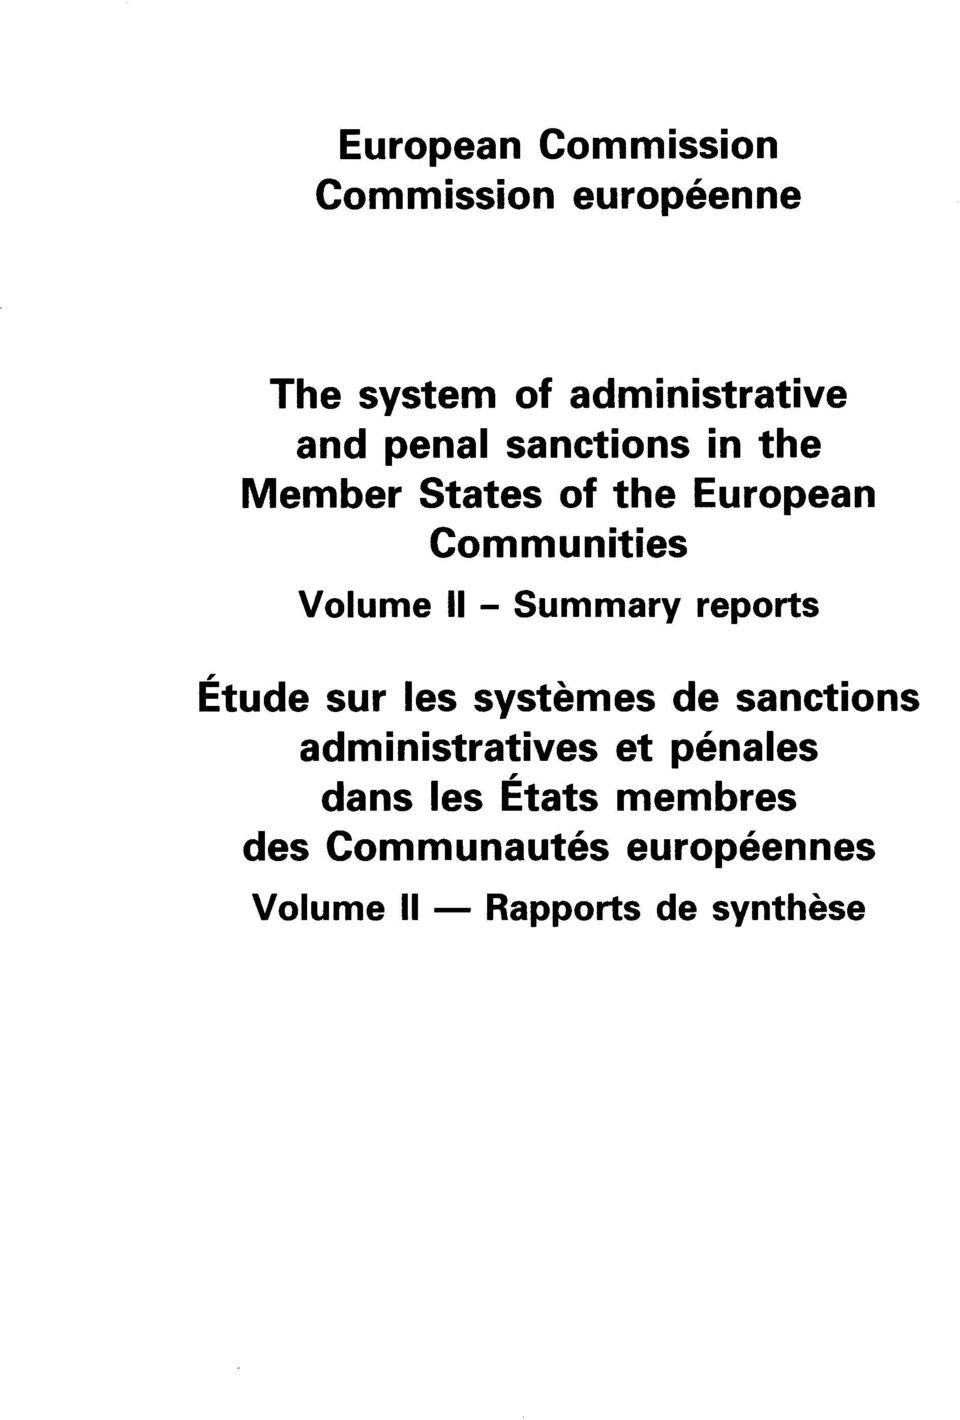 Summary reports Etude sur les systemes de sanctions administratives et penales